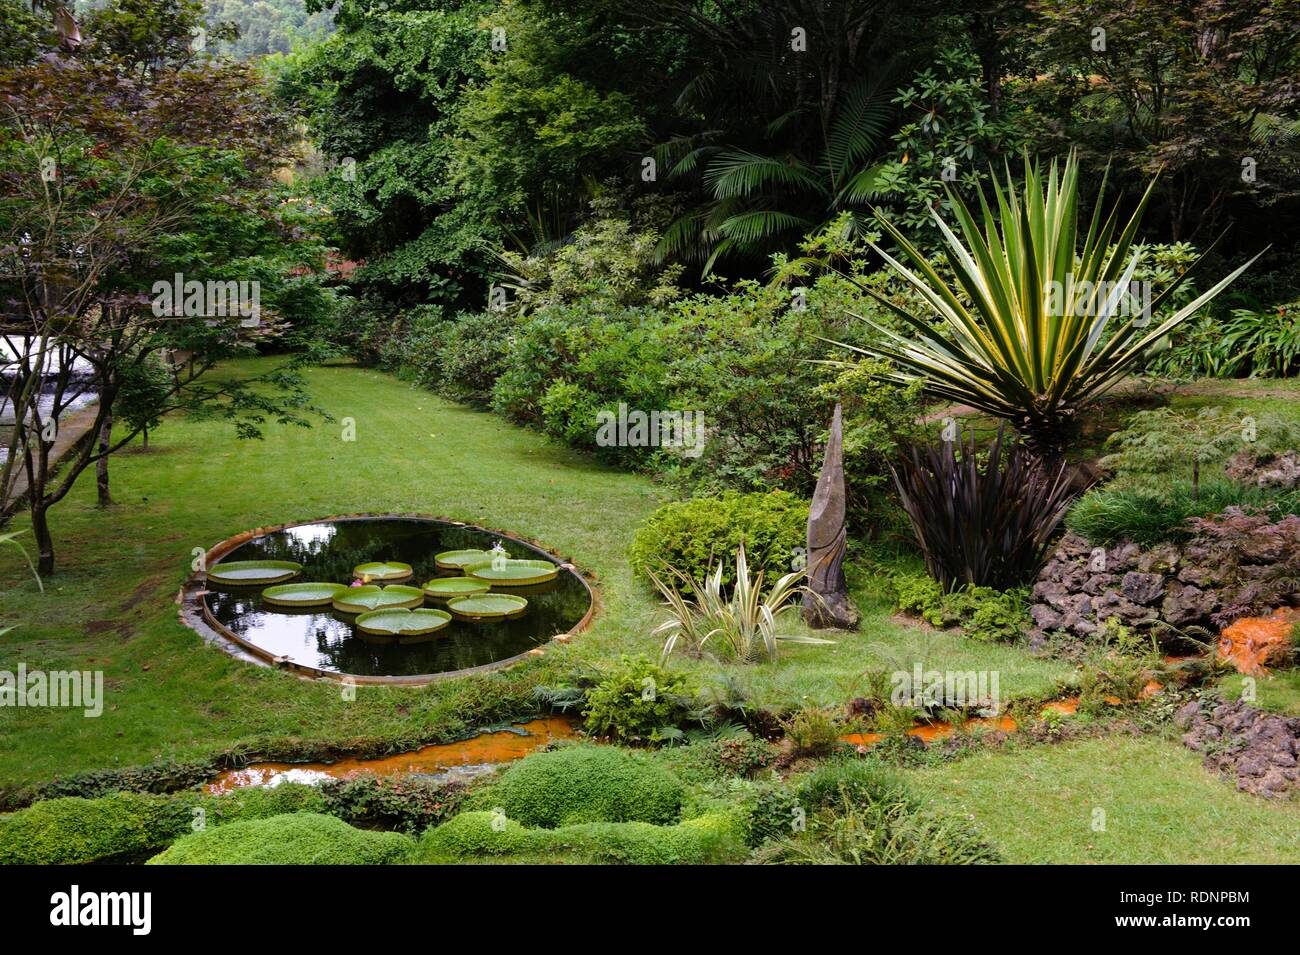 Park Terra Nostra in Furnas on the island of Sao Miguel, Azores, Portugal - Stock Image